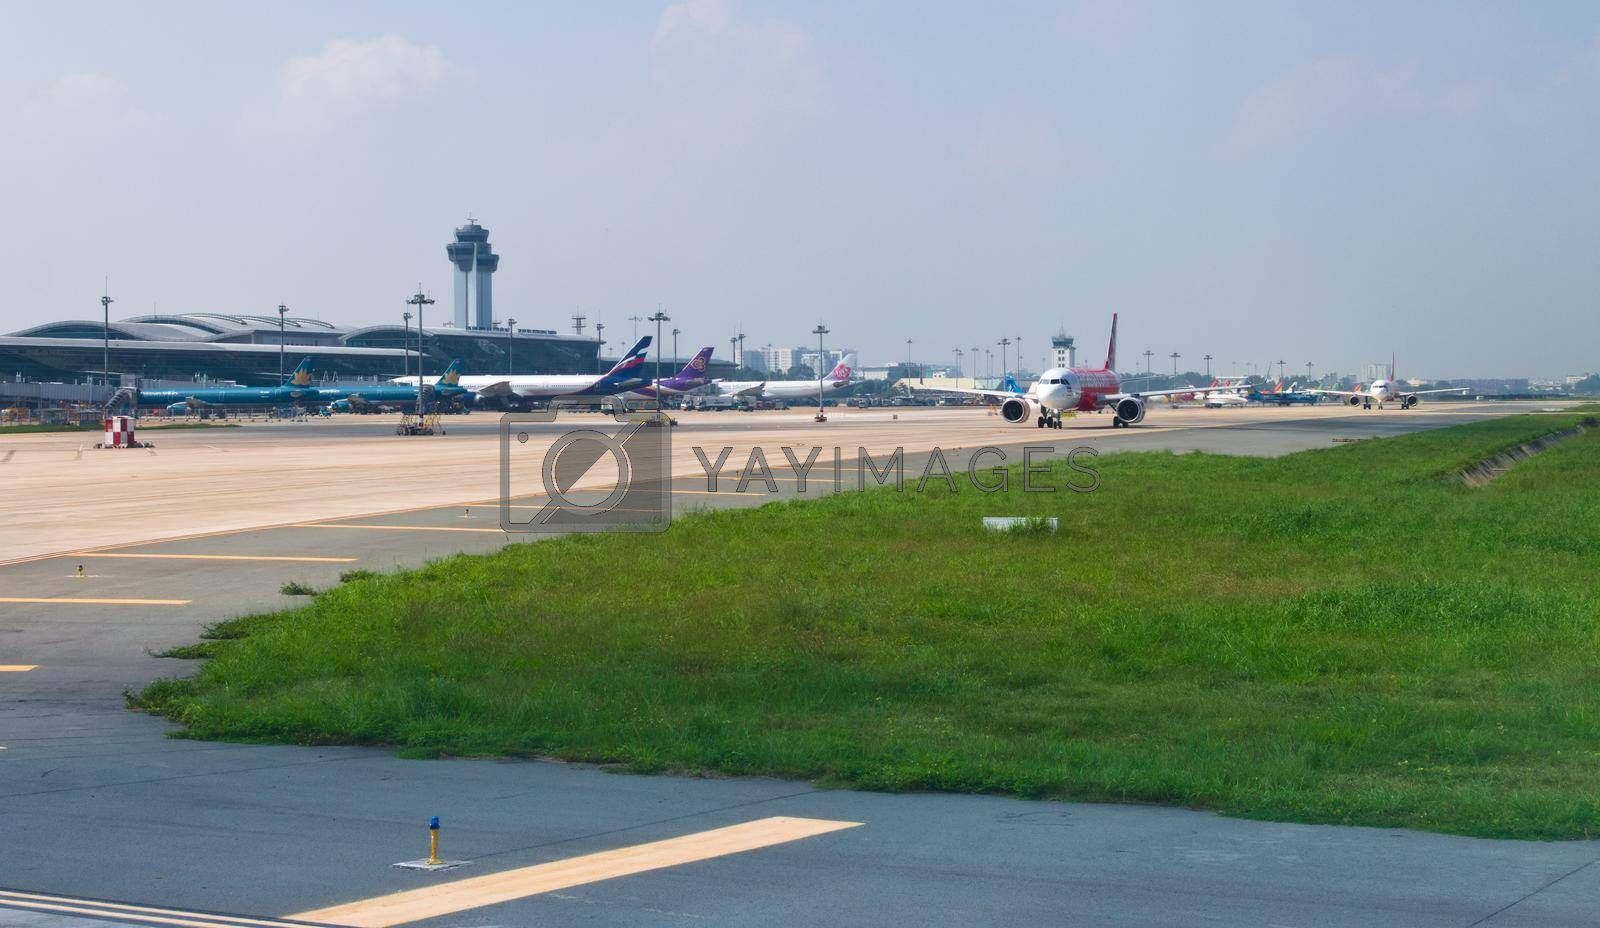 Royalty free image of 2019-11-14 / Ho Chi Minh City, Vietnam - Airliners queue up in the taxiway of the airport, awaiting authorization to take off. by hernan_hyper